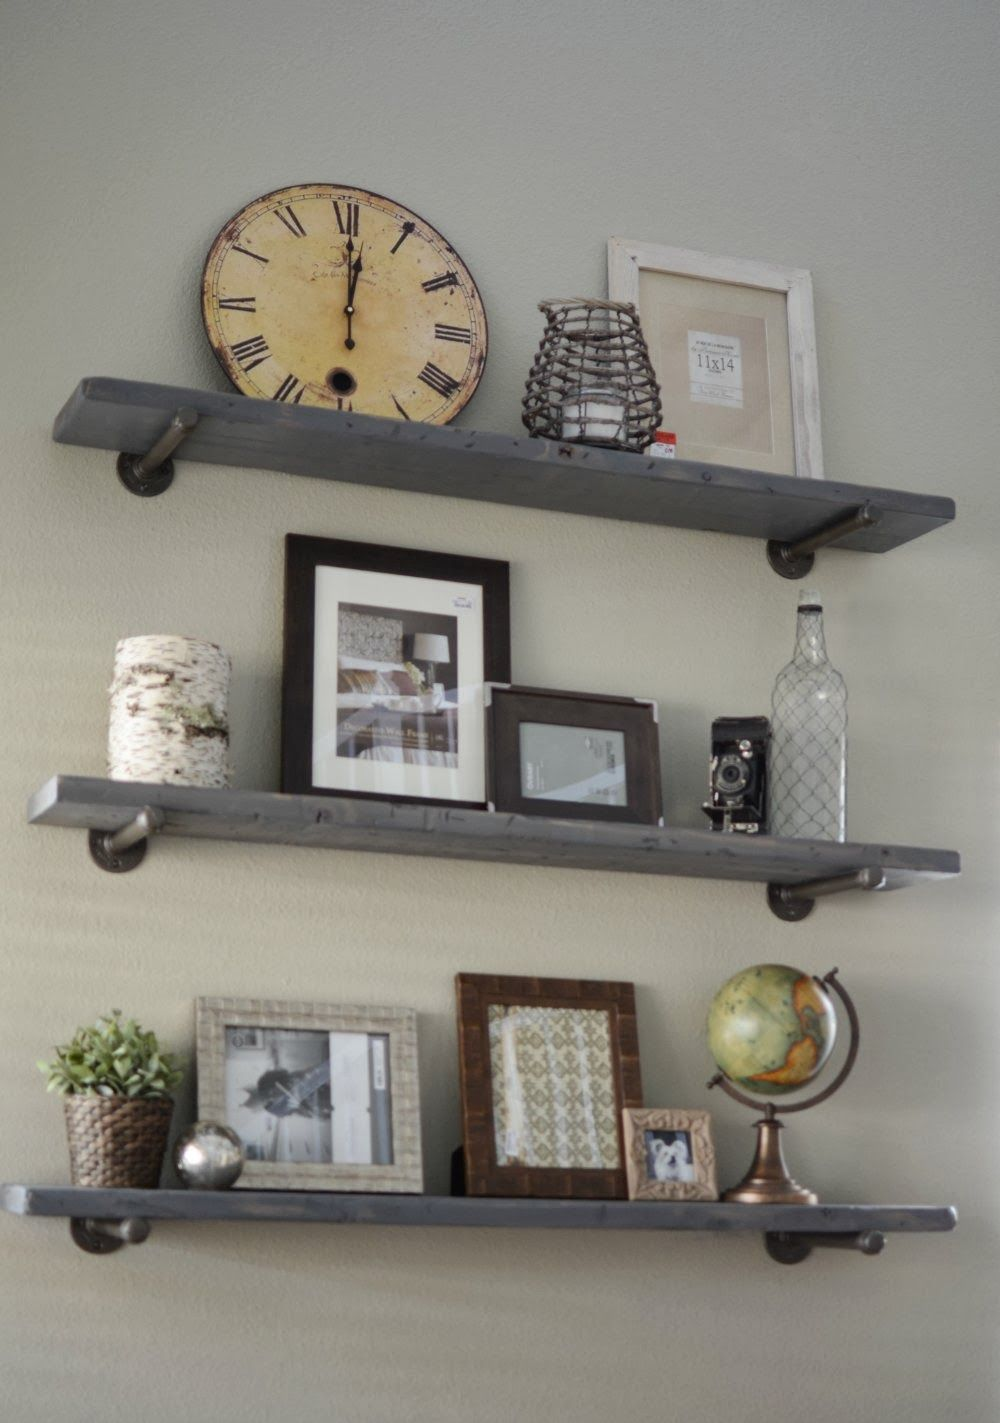 How to make restoration hardware shelves diy six 3 4 x 10 galvanized pipe 3 4 floor - Wall metal shelf ...